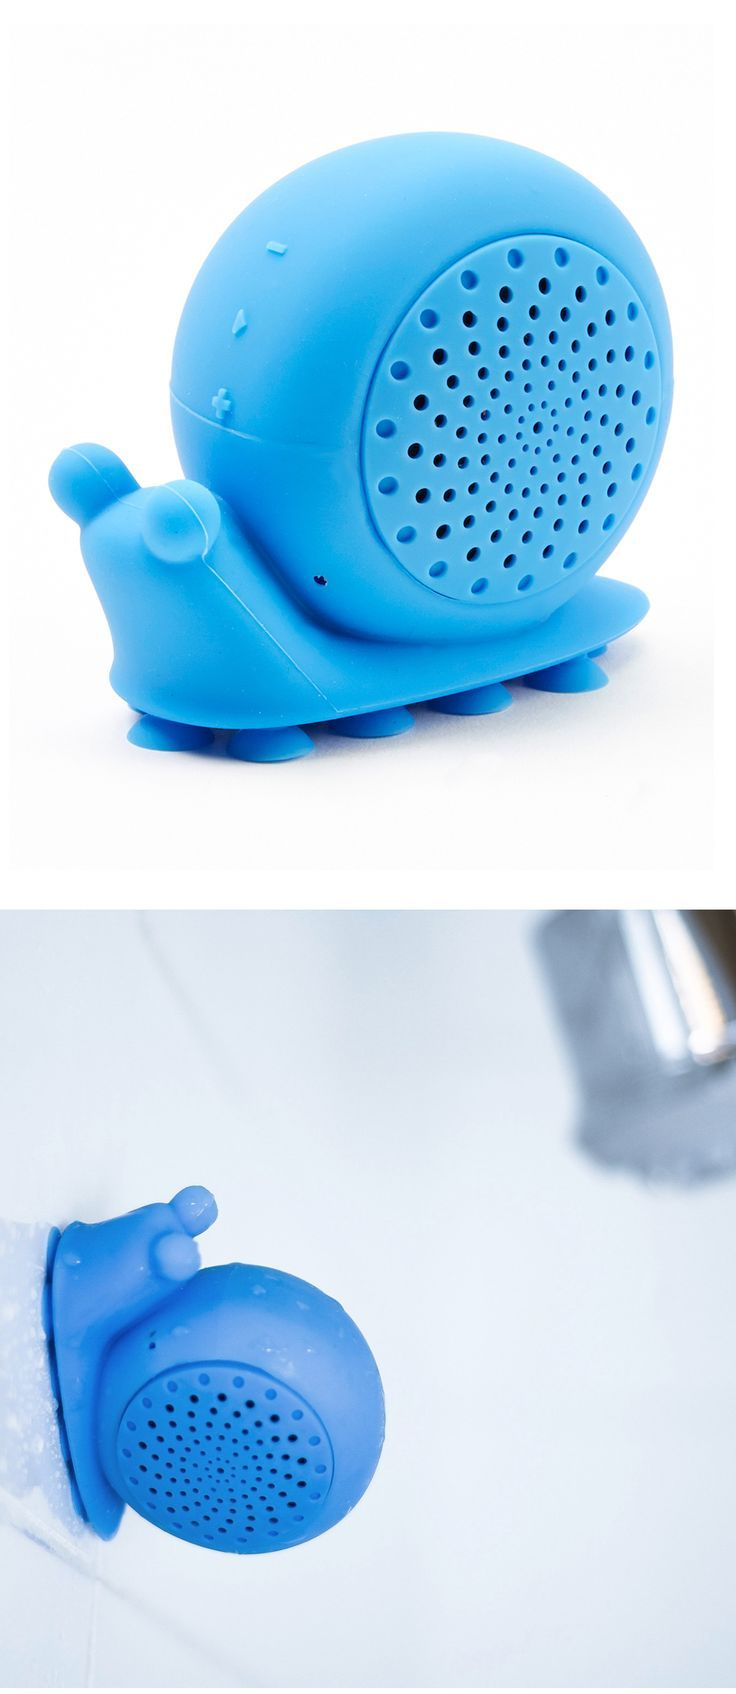 Bluetooth Shower Speaker Creatures (snails, octopus, & turtles) | This is awesome! I want a shower snail! hehe :P Krissy